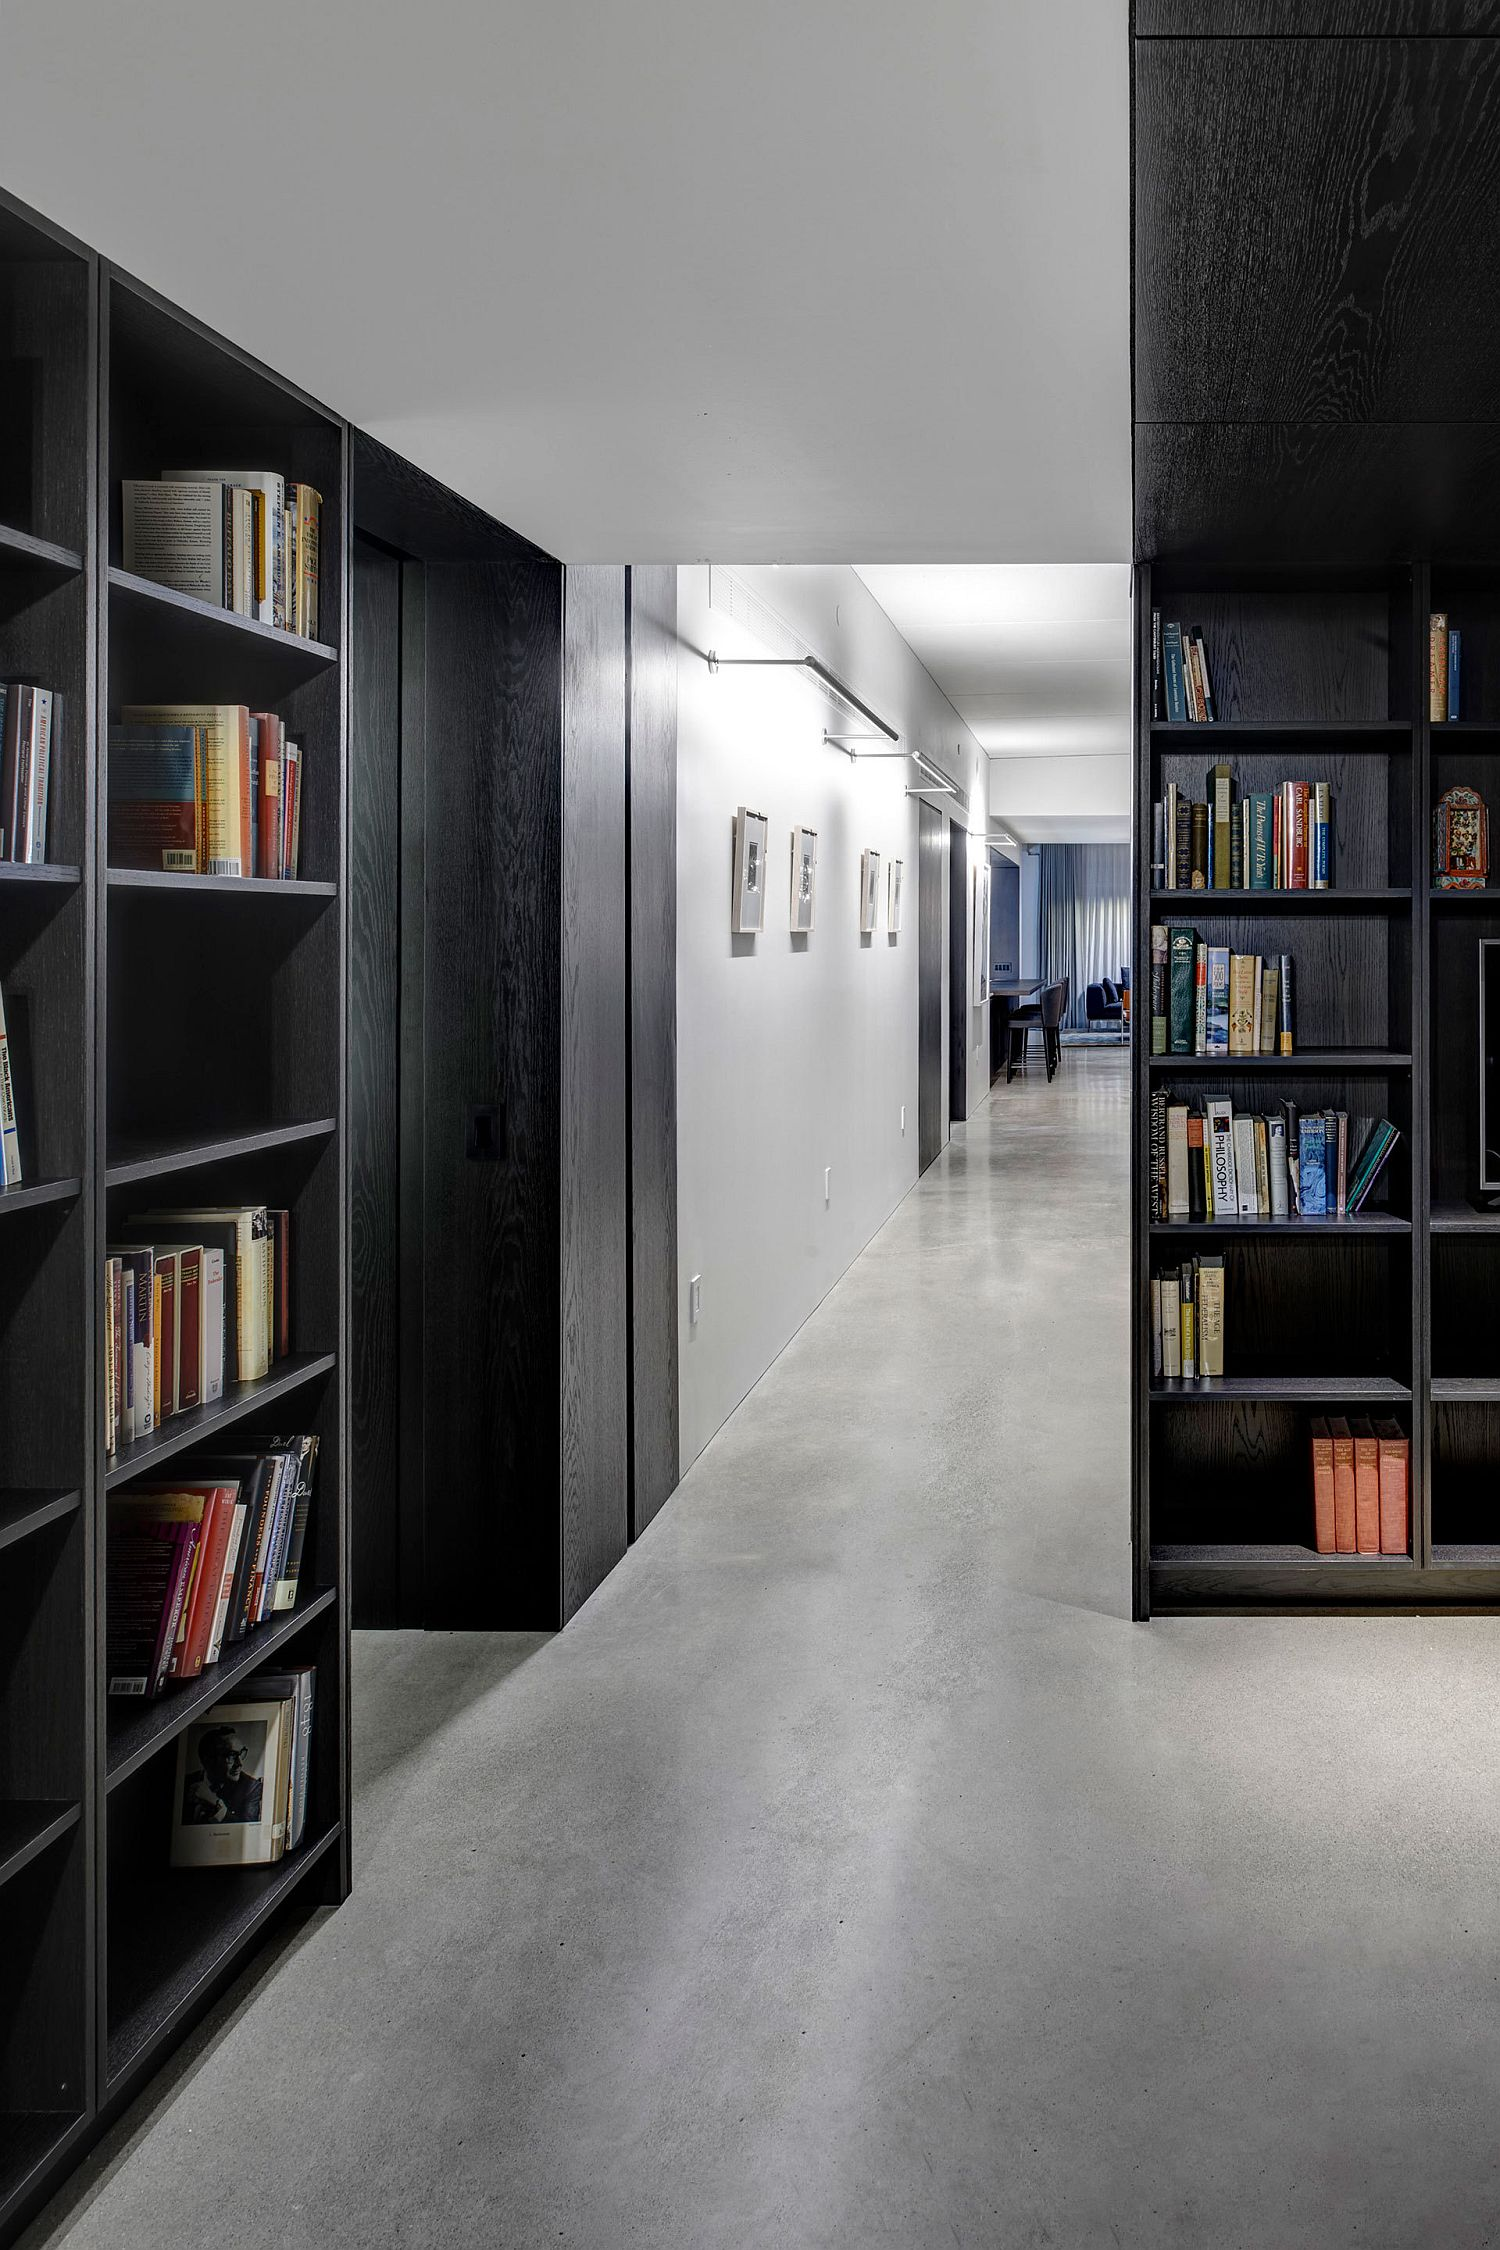 Bookshelves crafted using dark wooden elements make a big impact